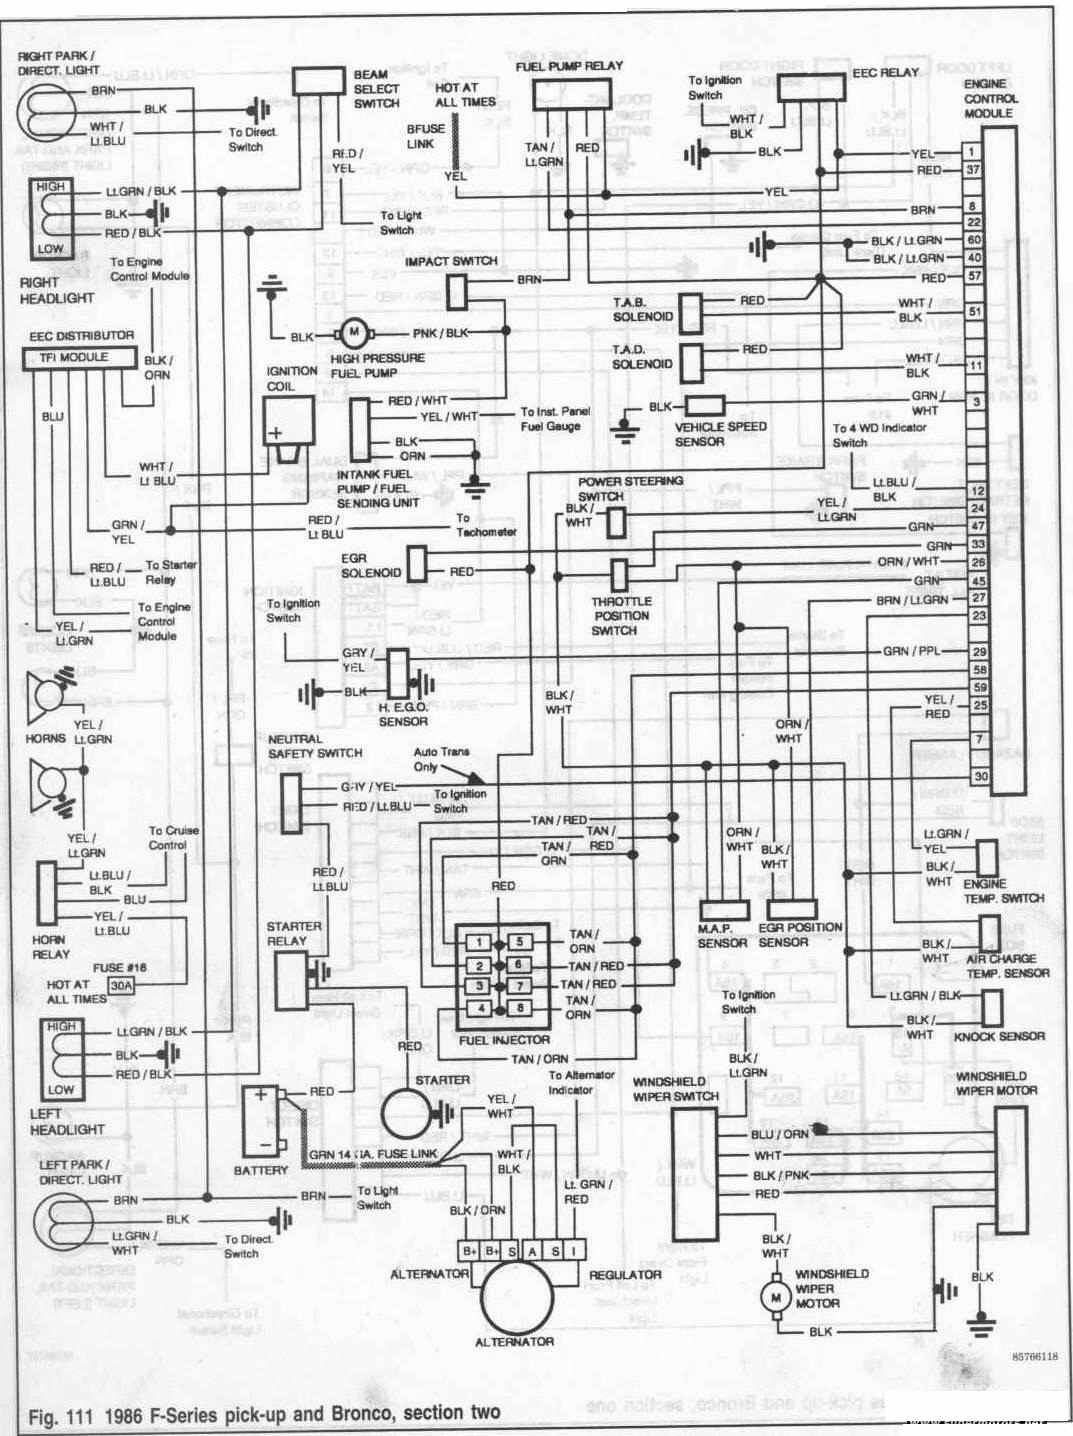 86 ford truck radio wiring diagram schematic 86 ford bronco radio wiring diagram ford bronco and f-series pickup 1986 engine control module ...